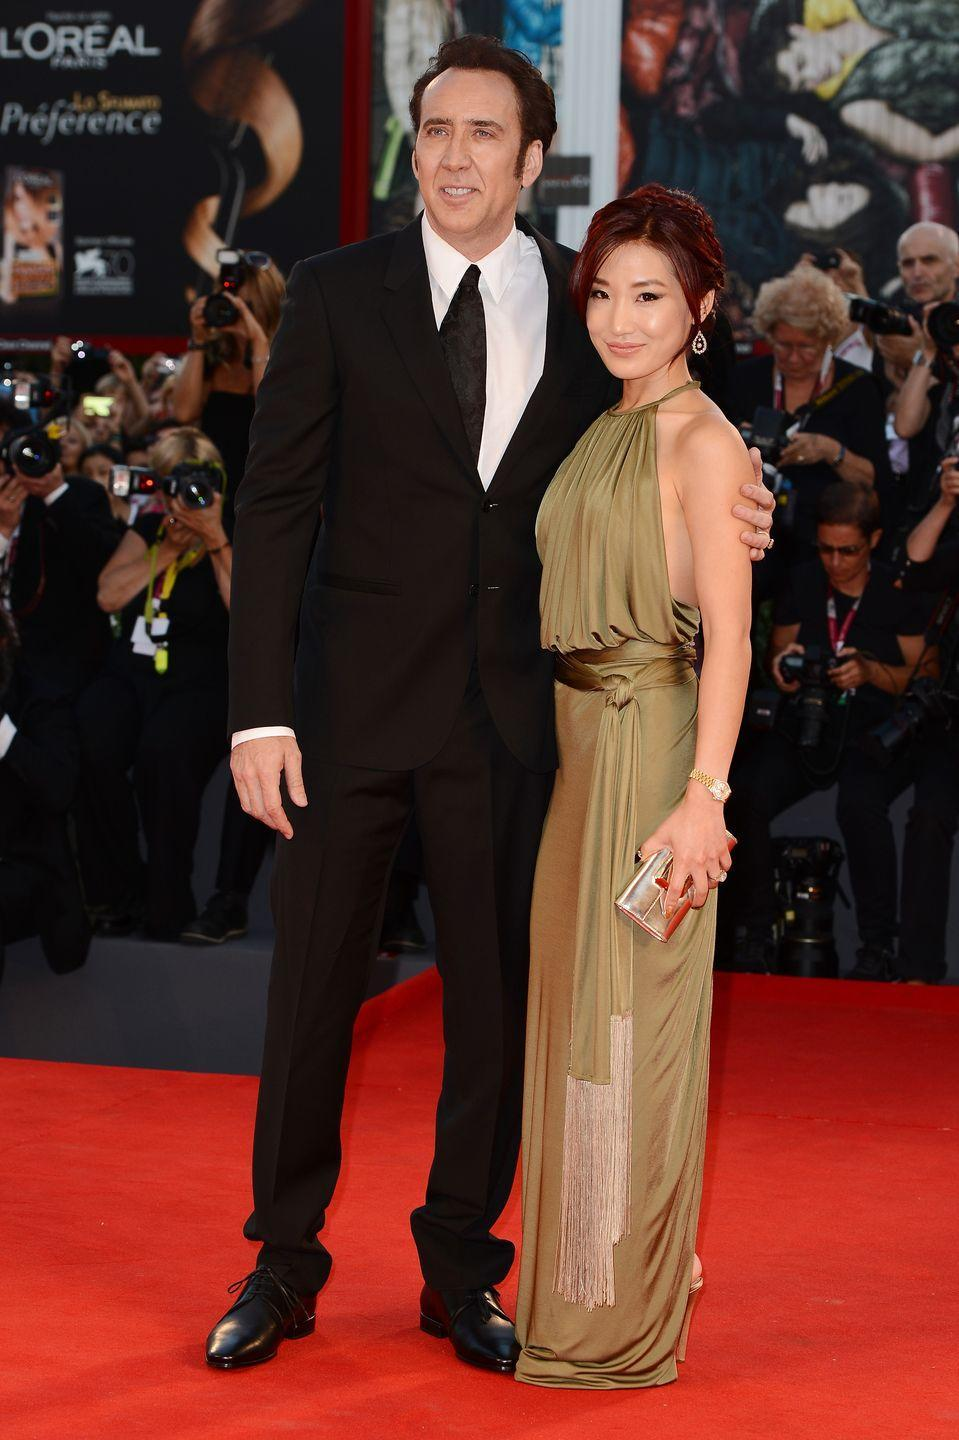 <p>Alice Kim was working as a waitress when she met Nicholas Cage at a restaurant in Los Angeles in 2004. The couple married within the year and were together for twelve years before divorcing in 2016. </p>